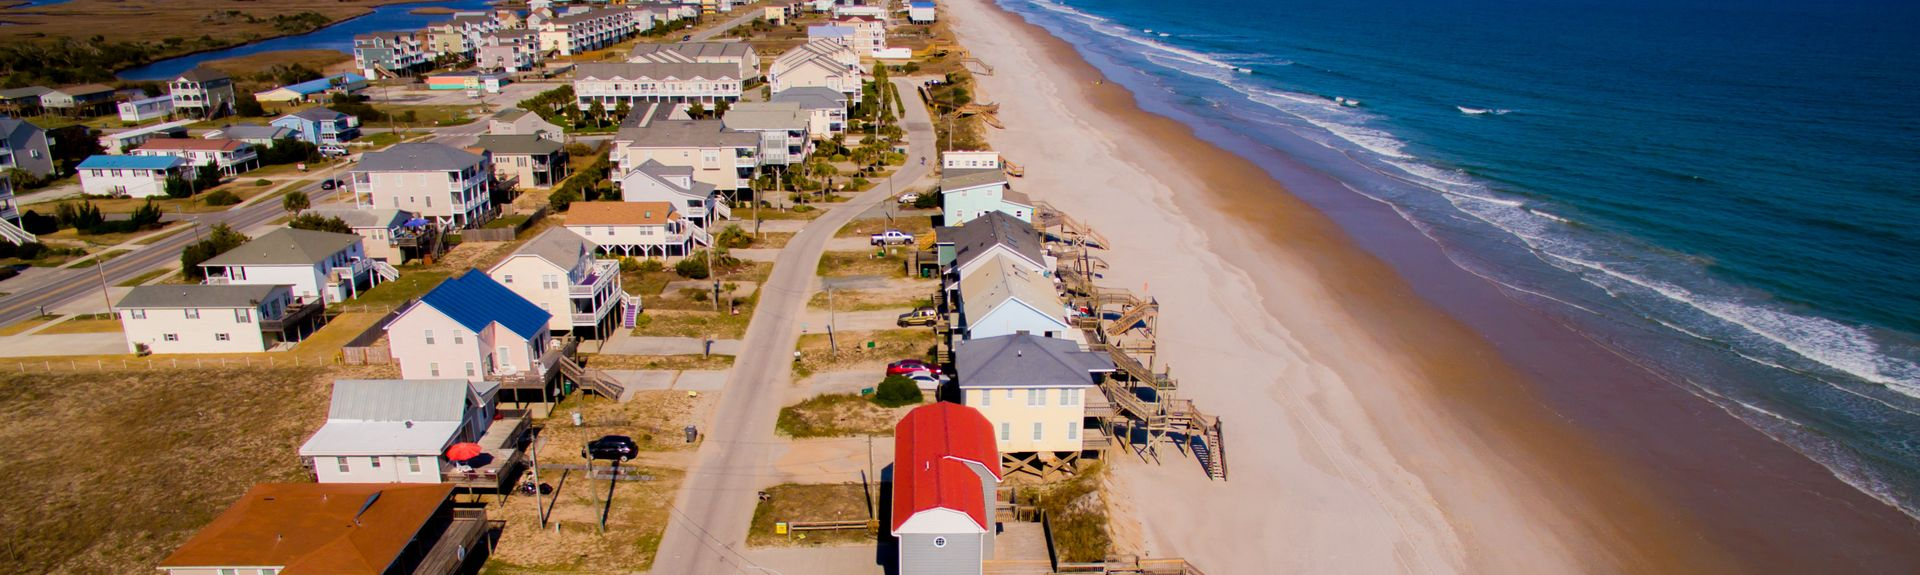 Topsail Beach, Nord-Carolina, Forente Stater